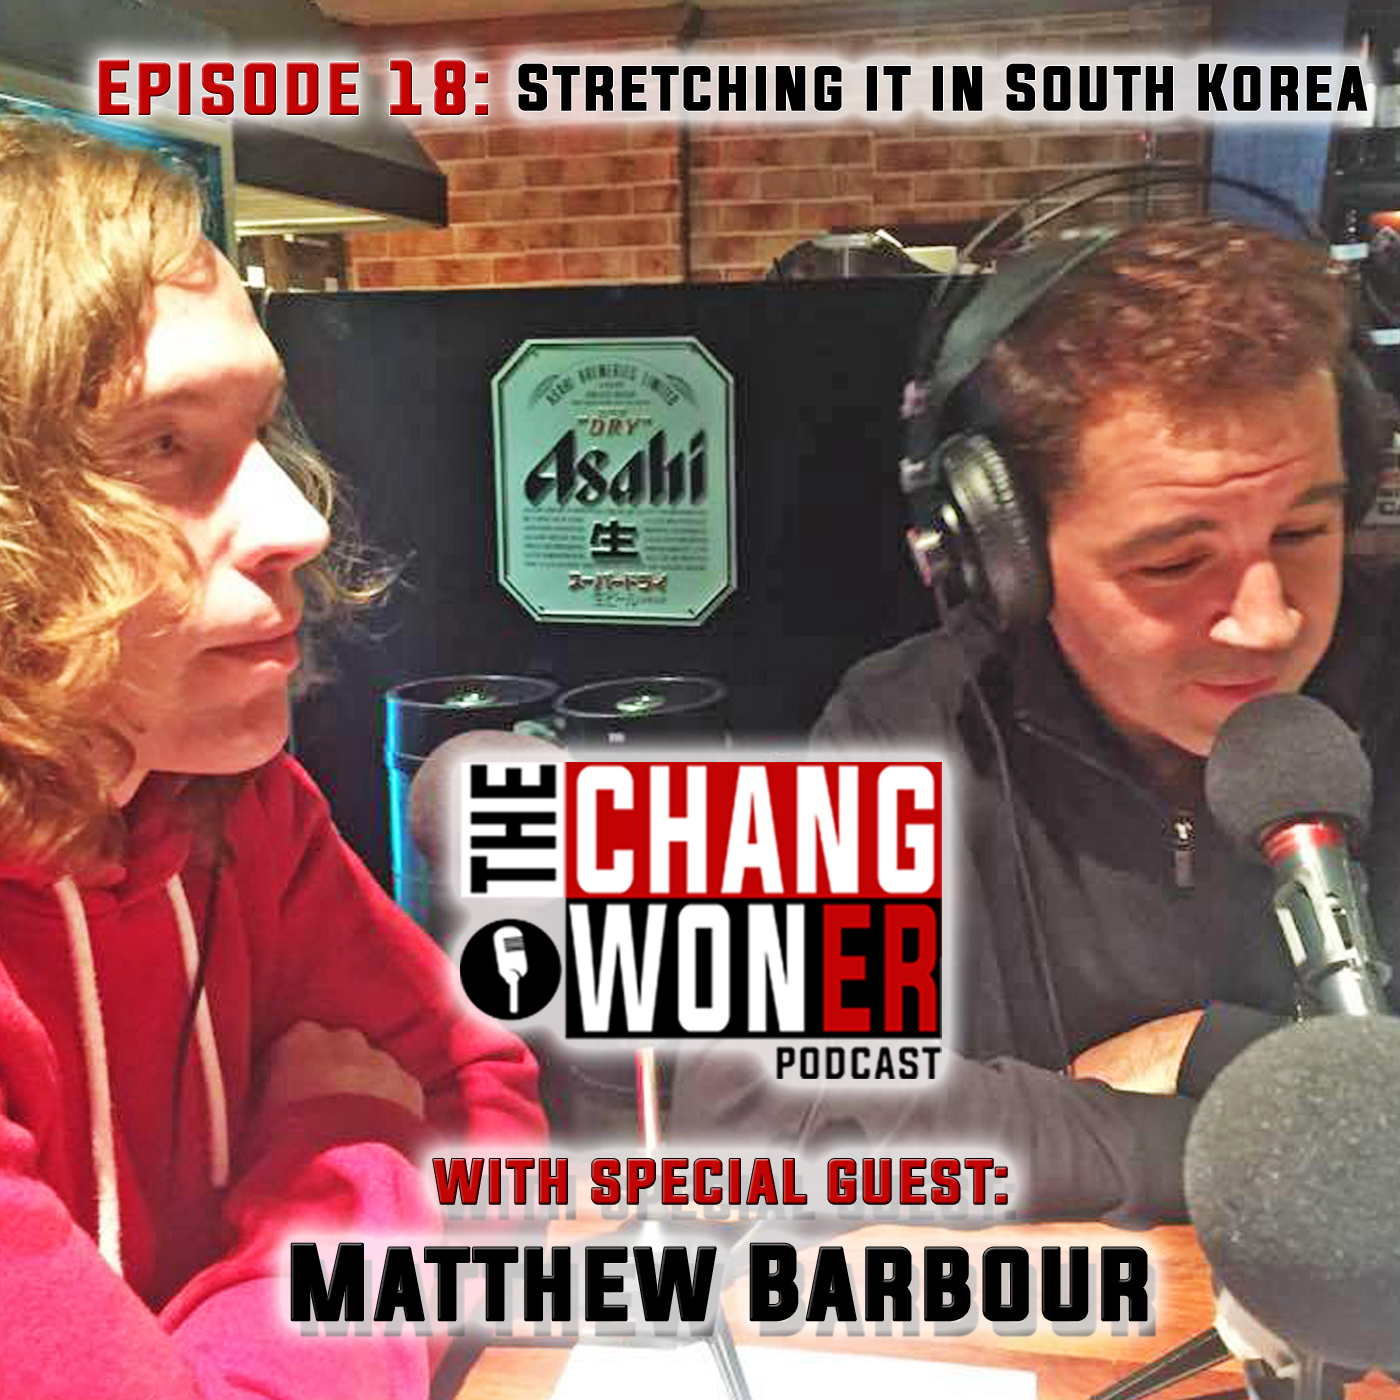 Artwork for Yoga in South Korea -guest Matthew Barbour (Ep 18)